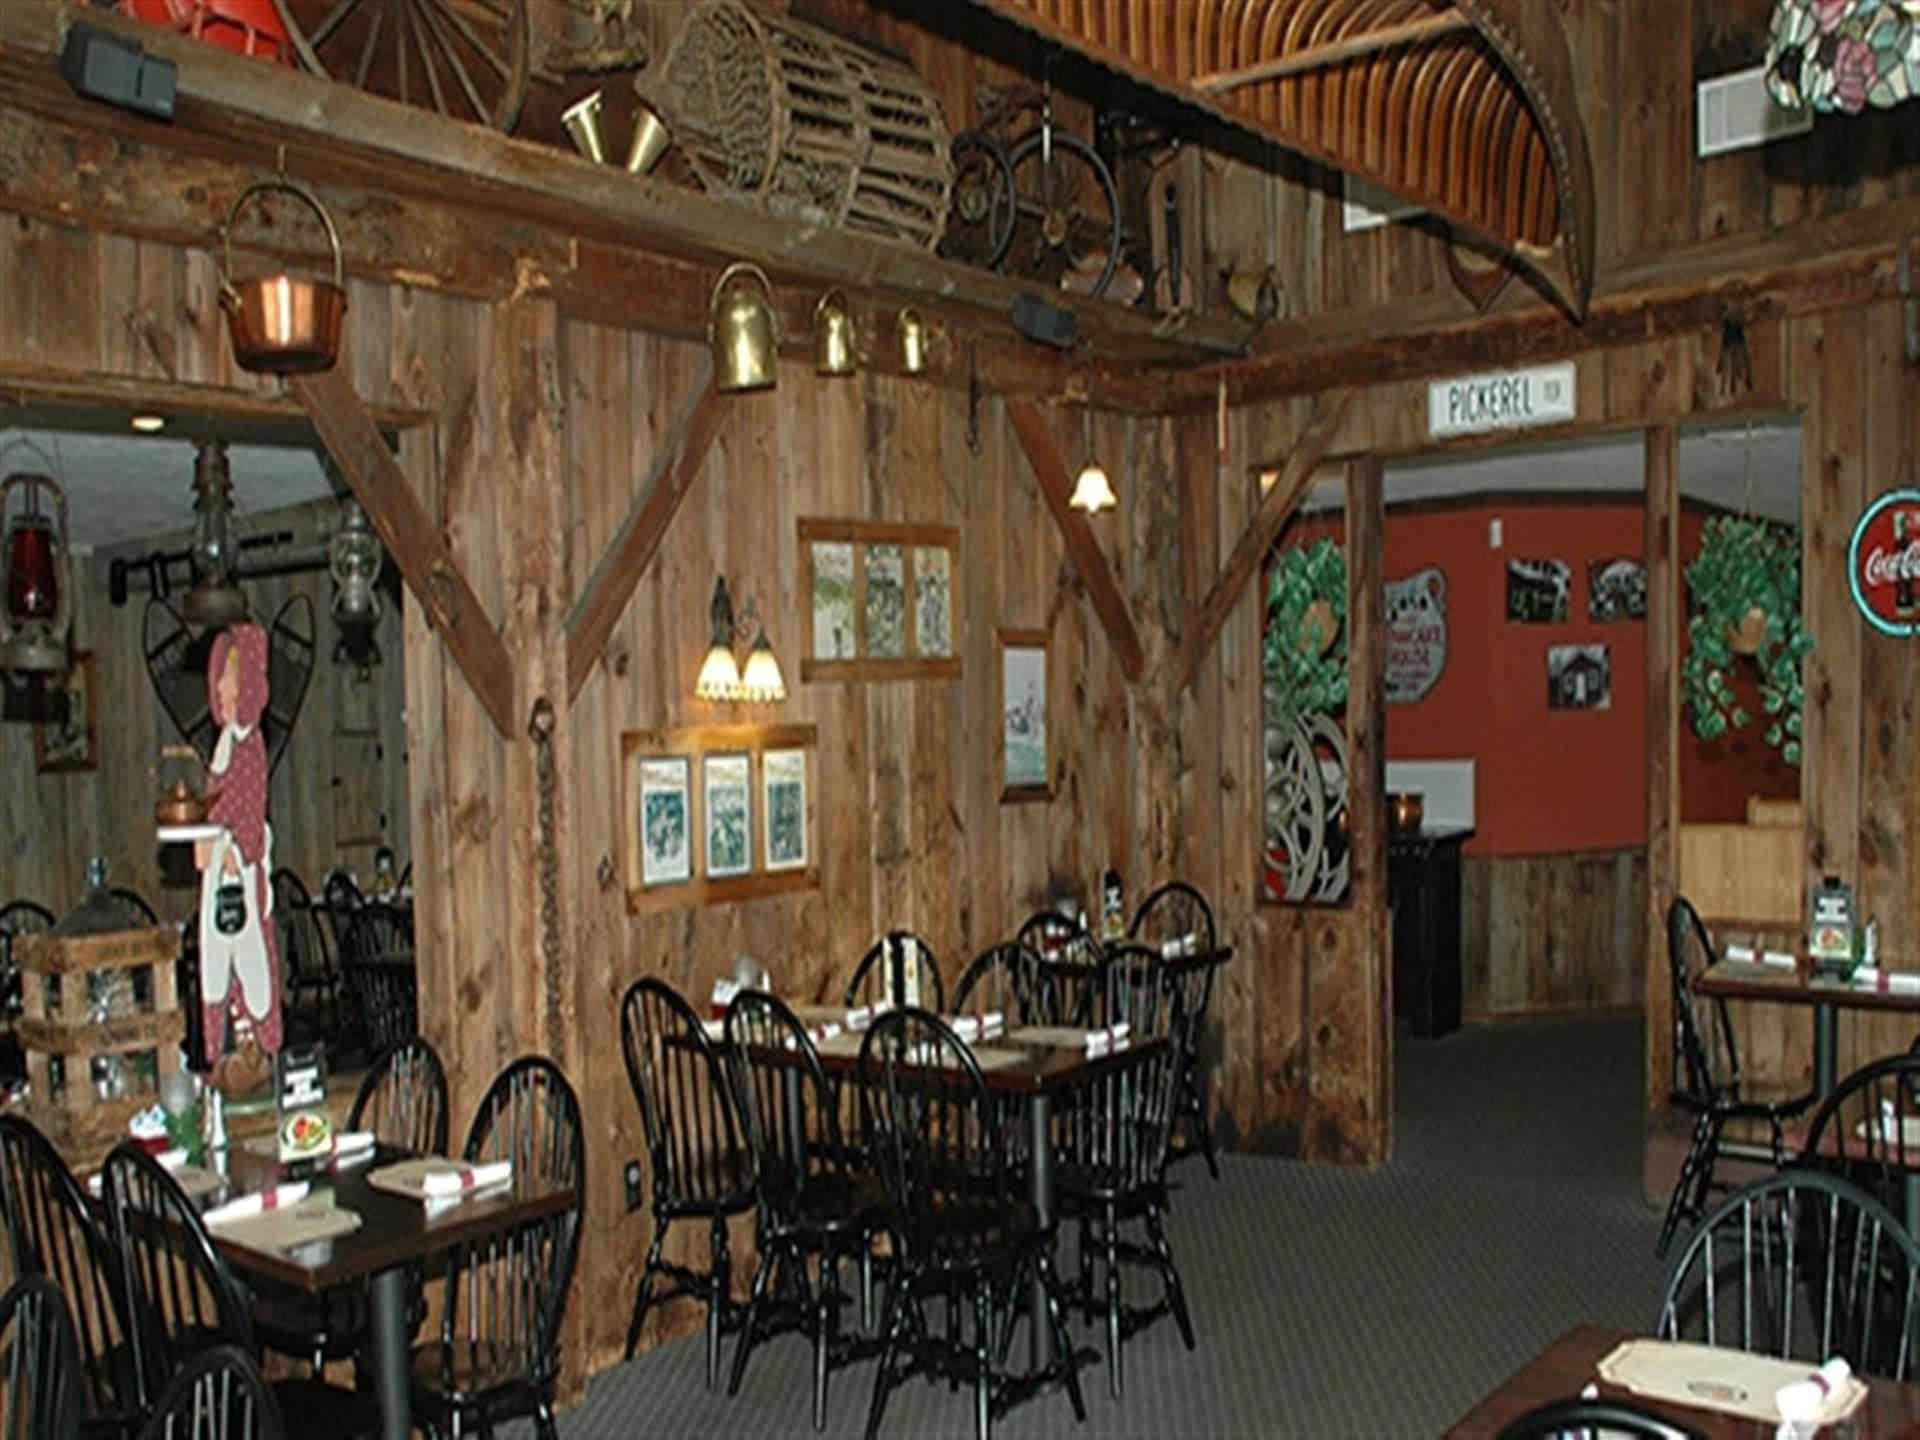 Inside the dining room at Apple Valley Restaurant. Country log cabin vibe. Wood walls and tables. Native American wall decor.